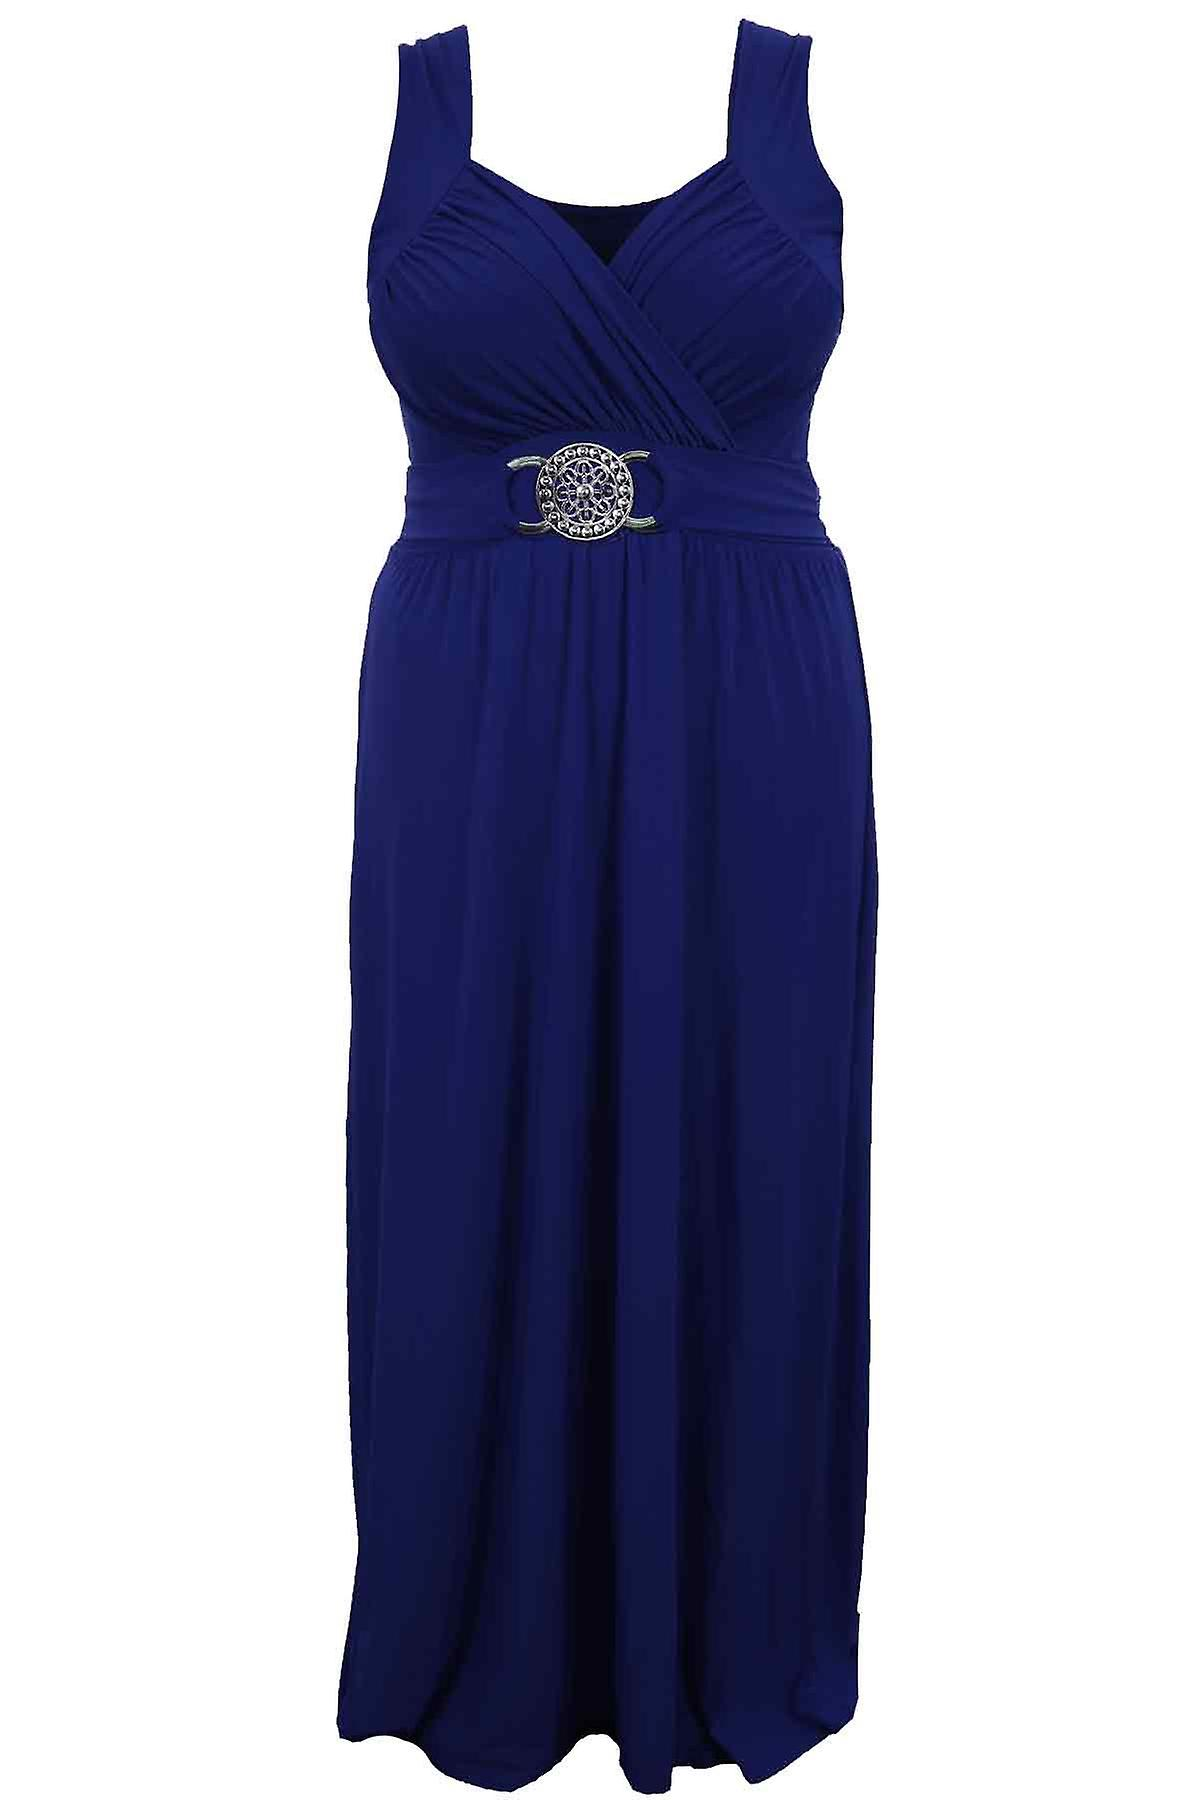 Ladies Buckle Waisted Plus Size Tie Back Evening Long Women's Maxi Dress